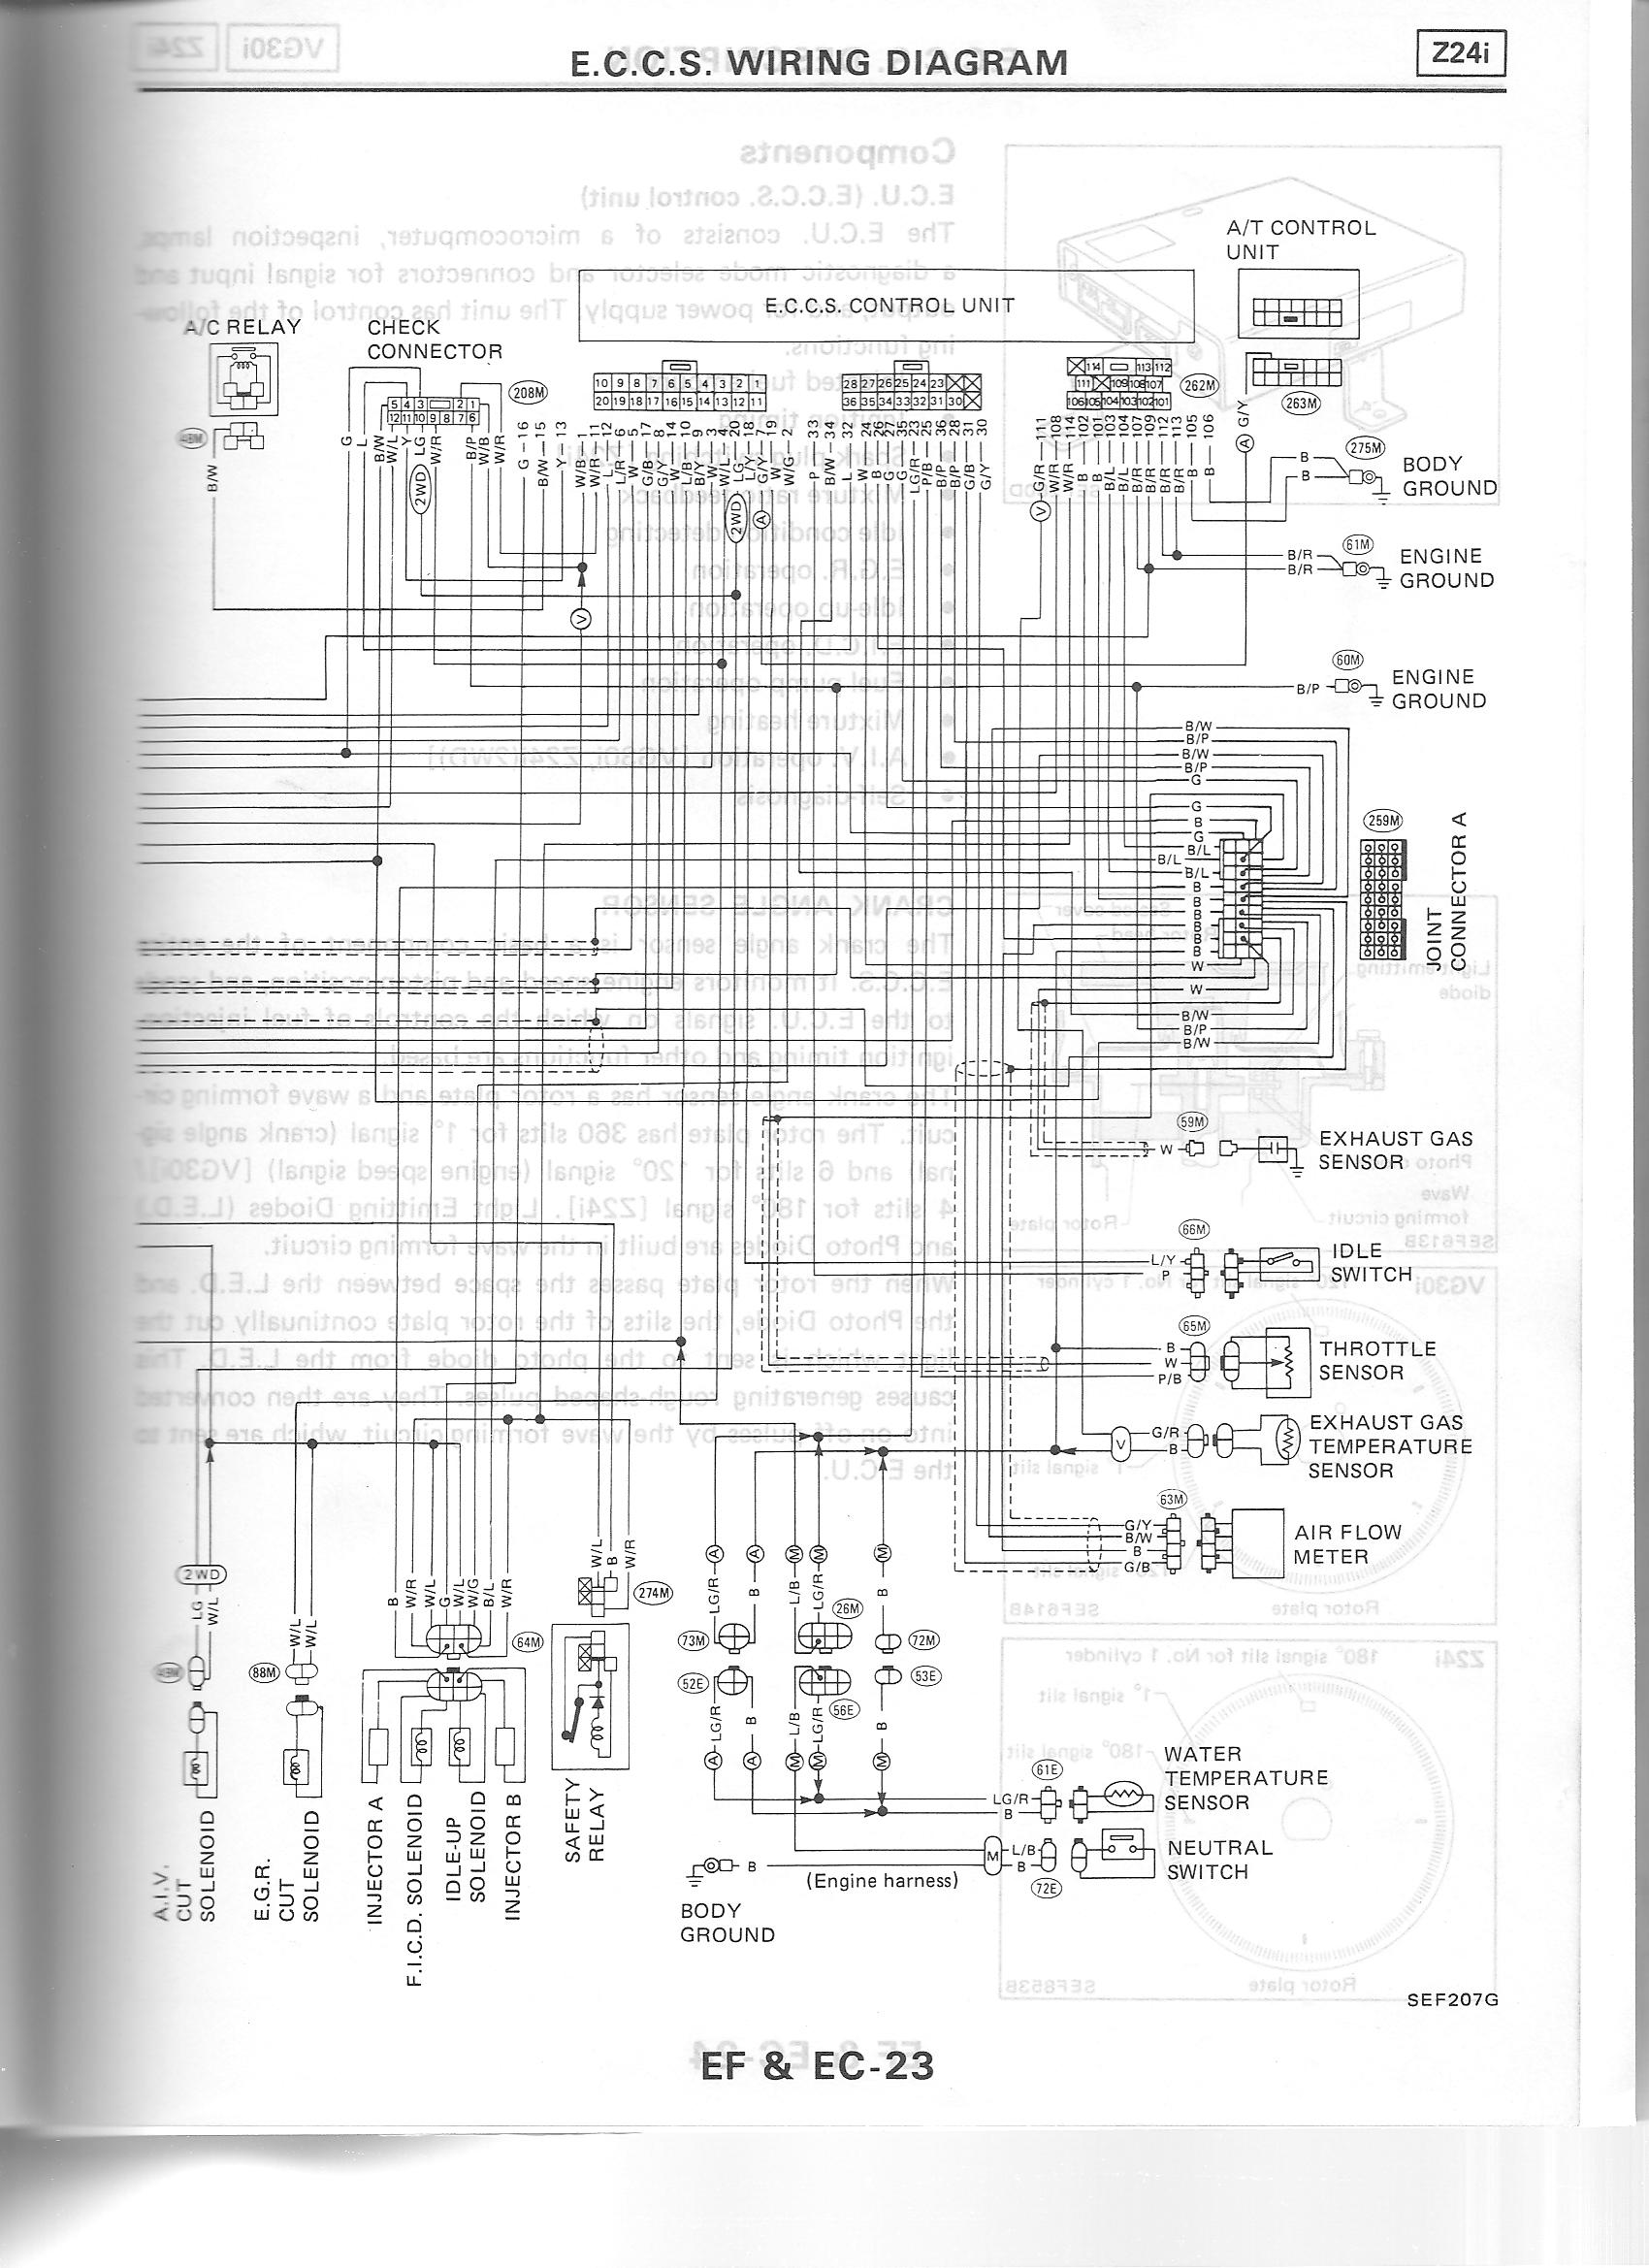 hight resolution of 1990 nissan truck wiring diagram wiring library nissan altima wiring diagram pdf 1990 nissan truck wiring diagram